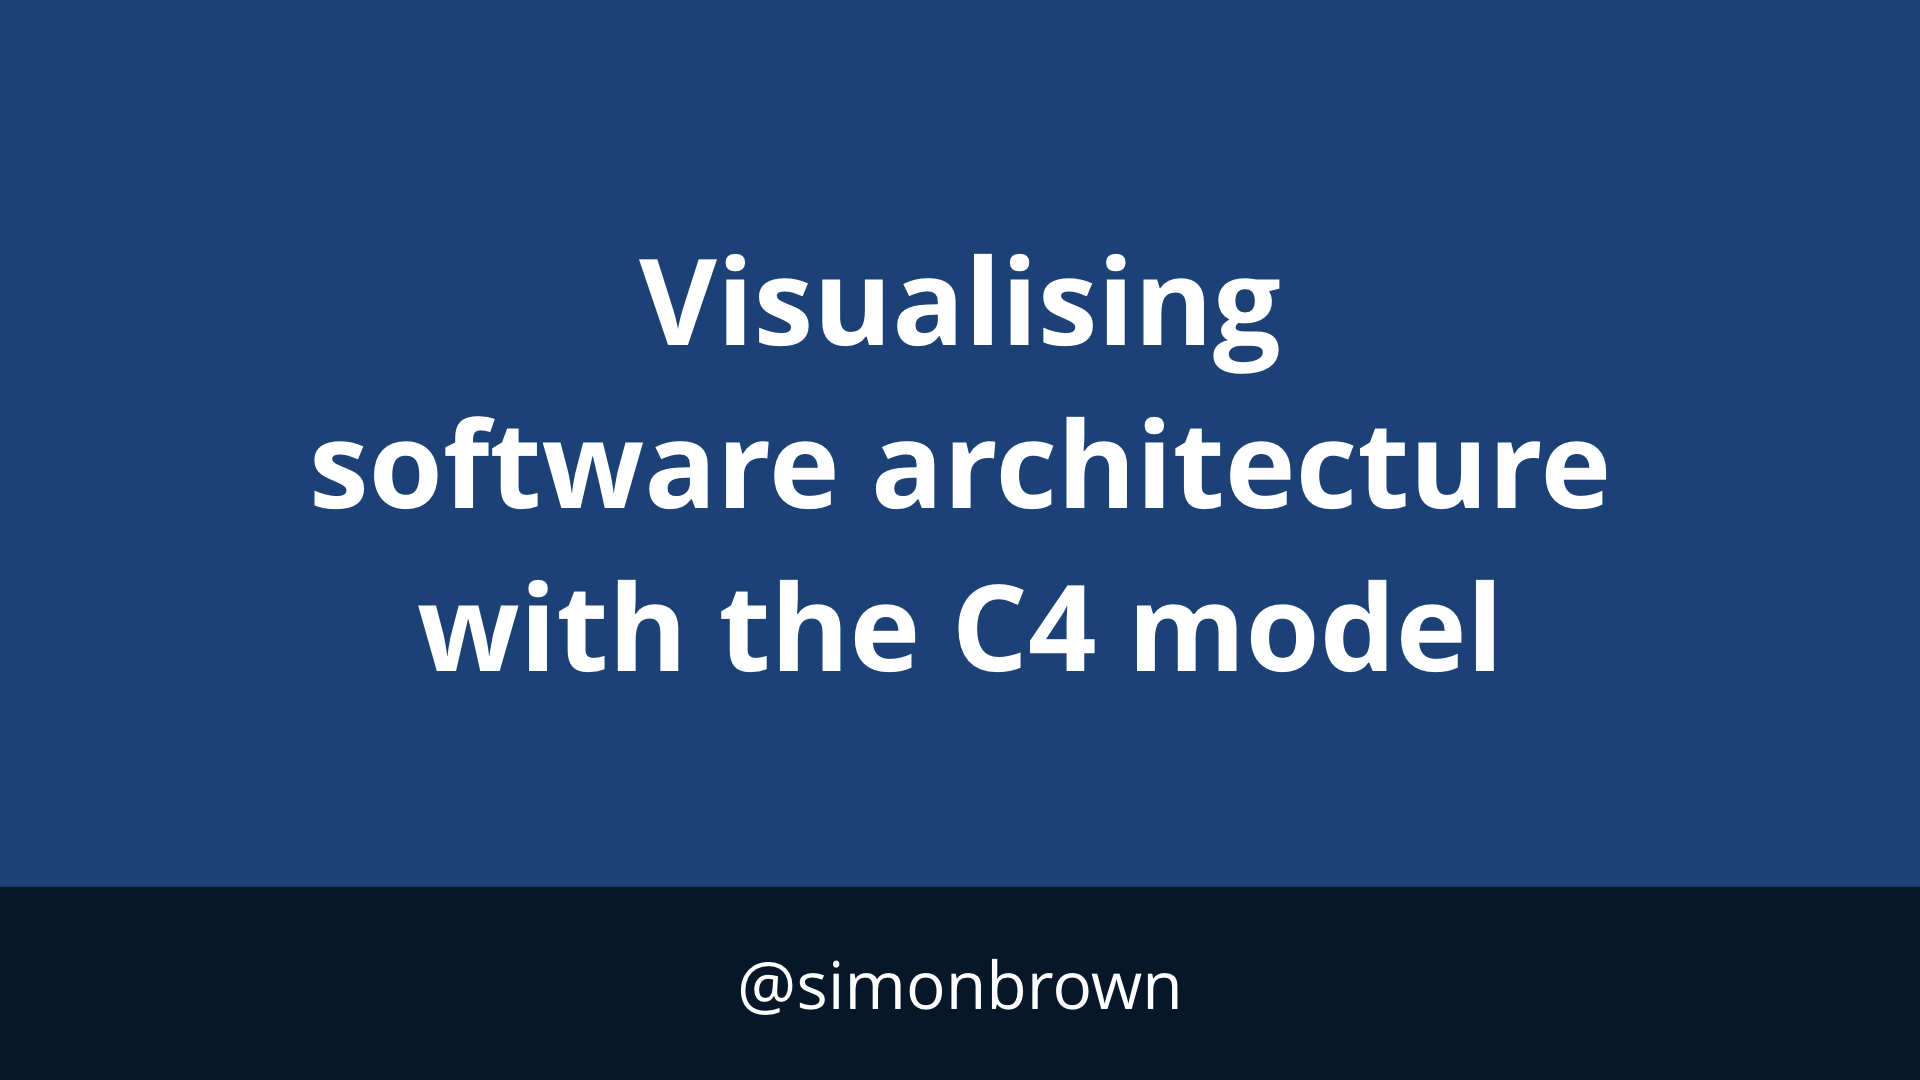 Visualising software architecture with the C4 model